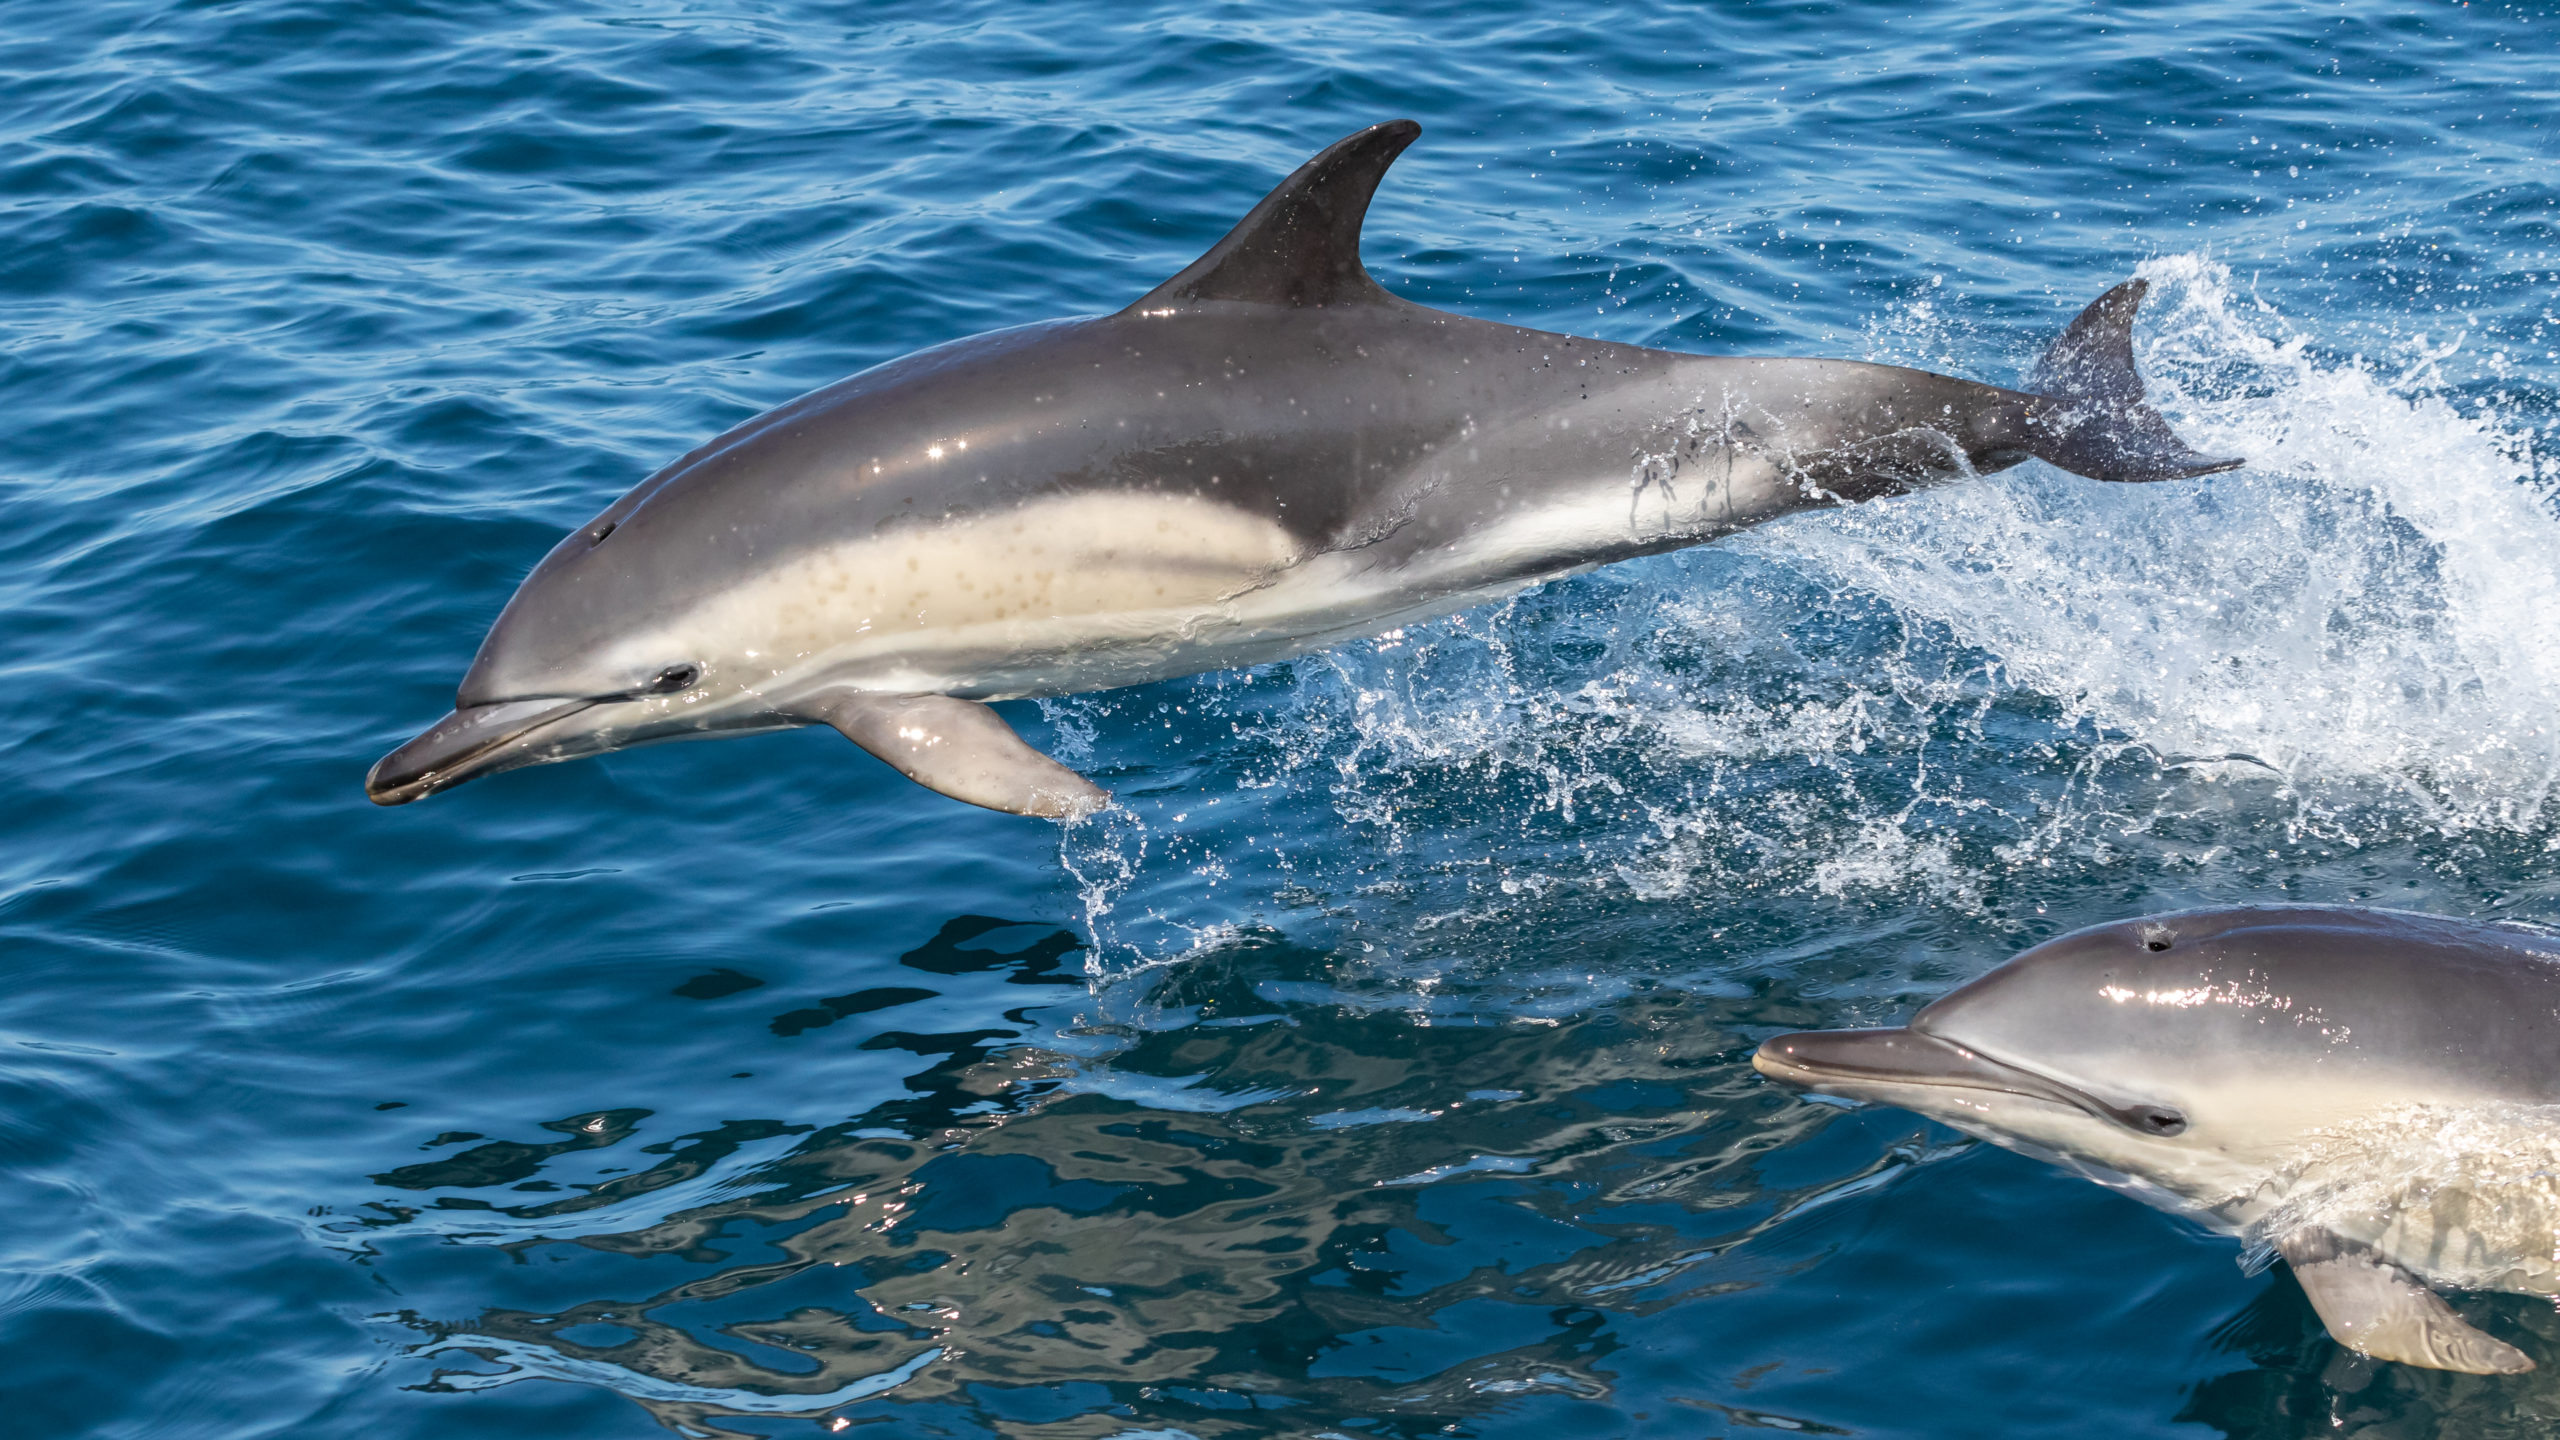 Two dolphins jumping out of the water.